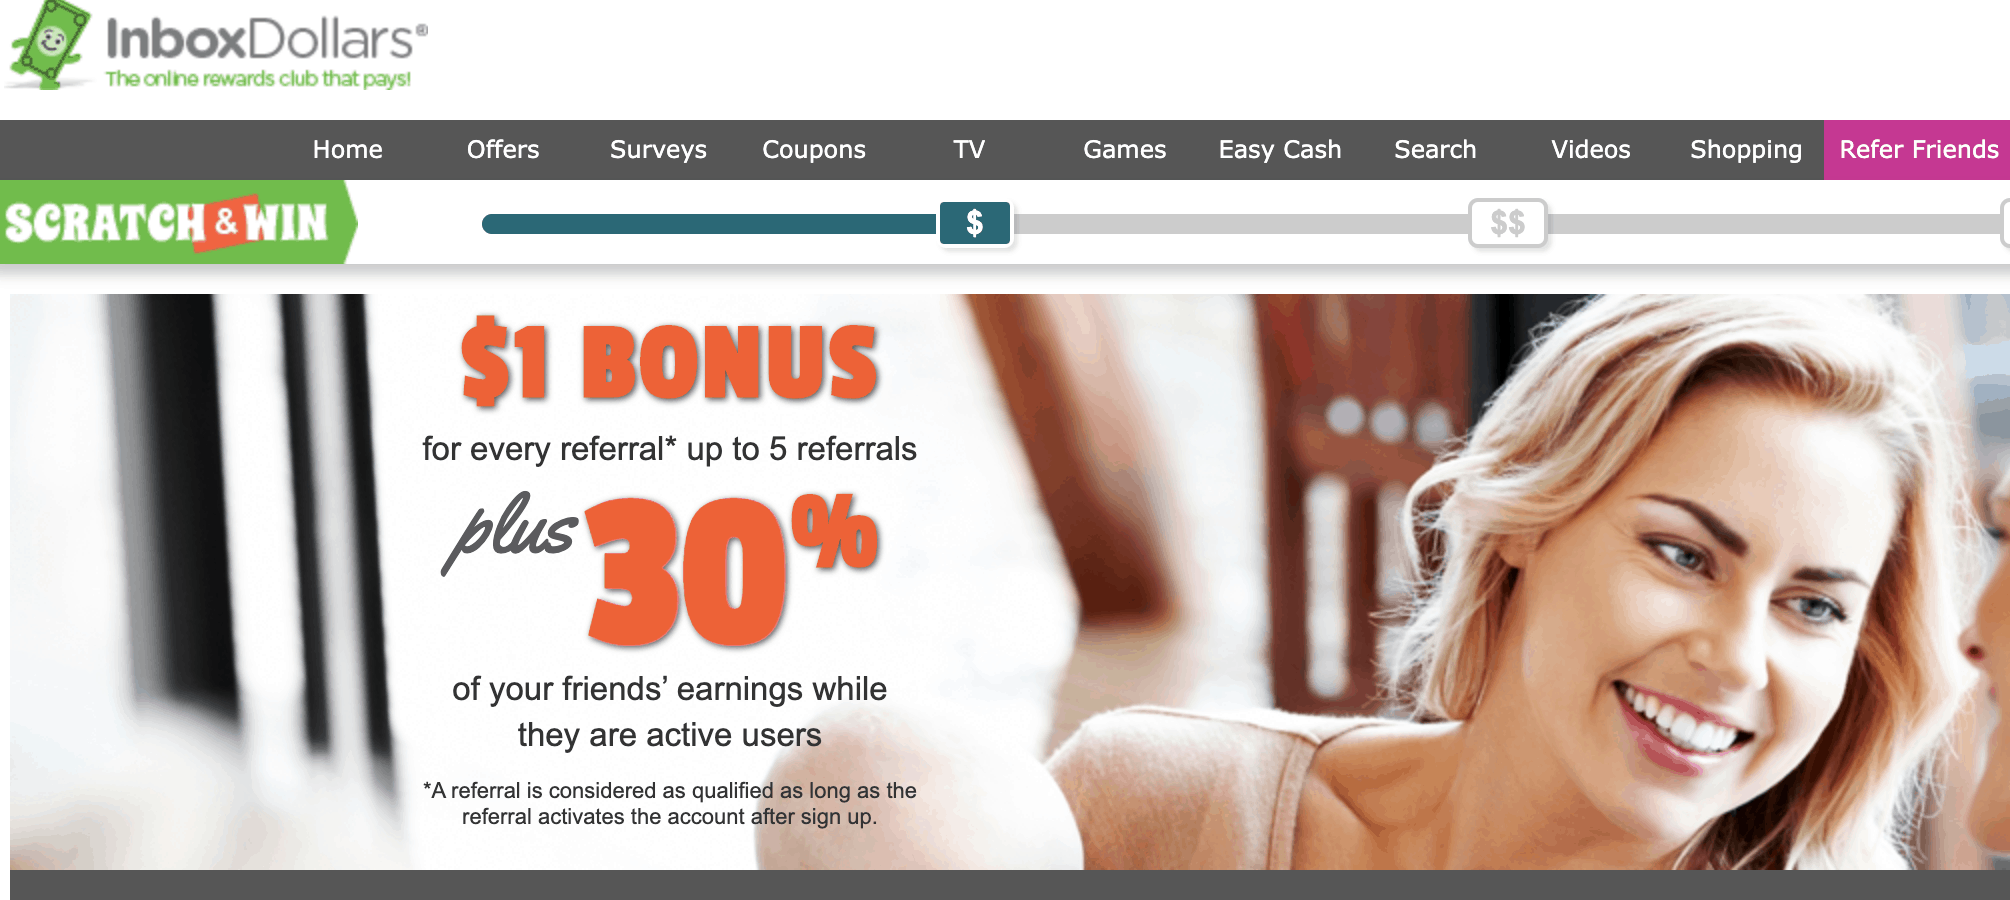 InboxDollars is one of the best referral programs that pay you cash for referring your friends.